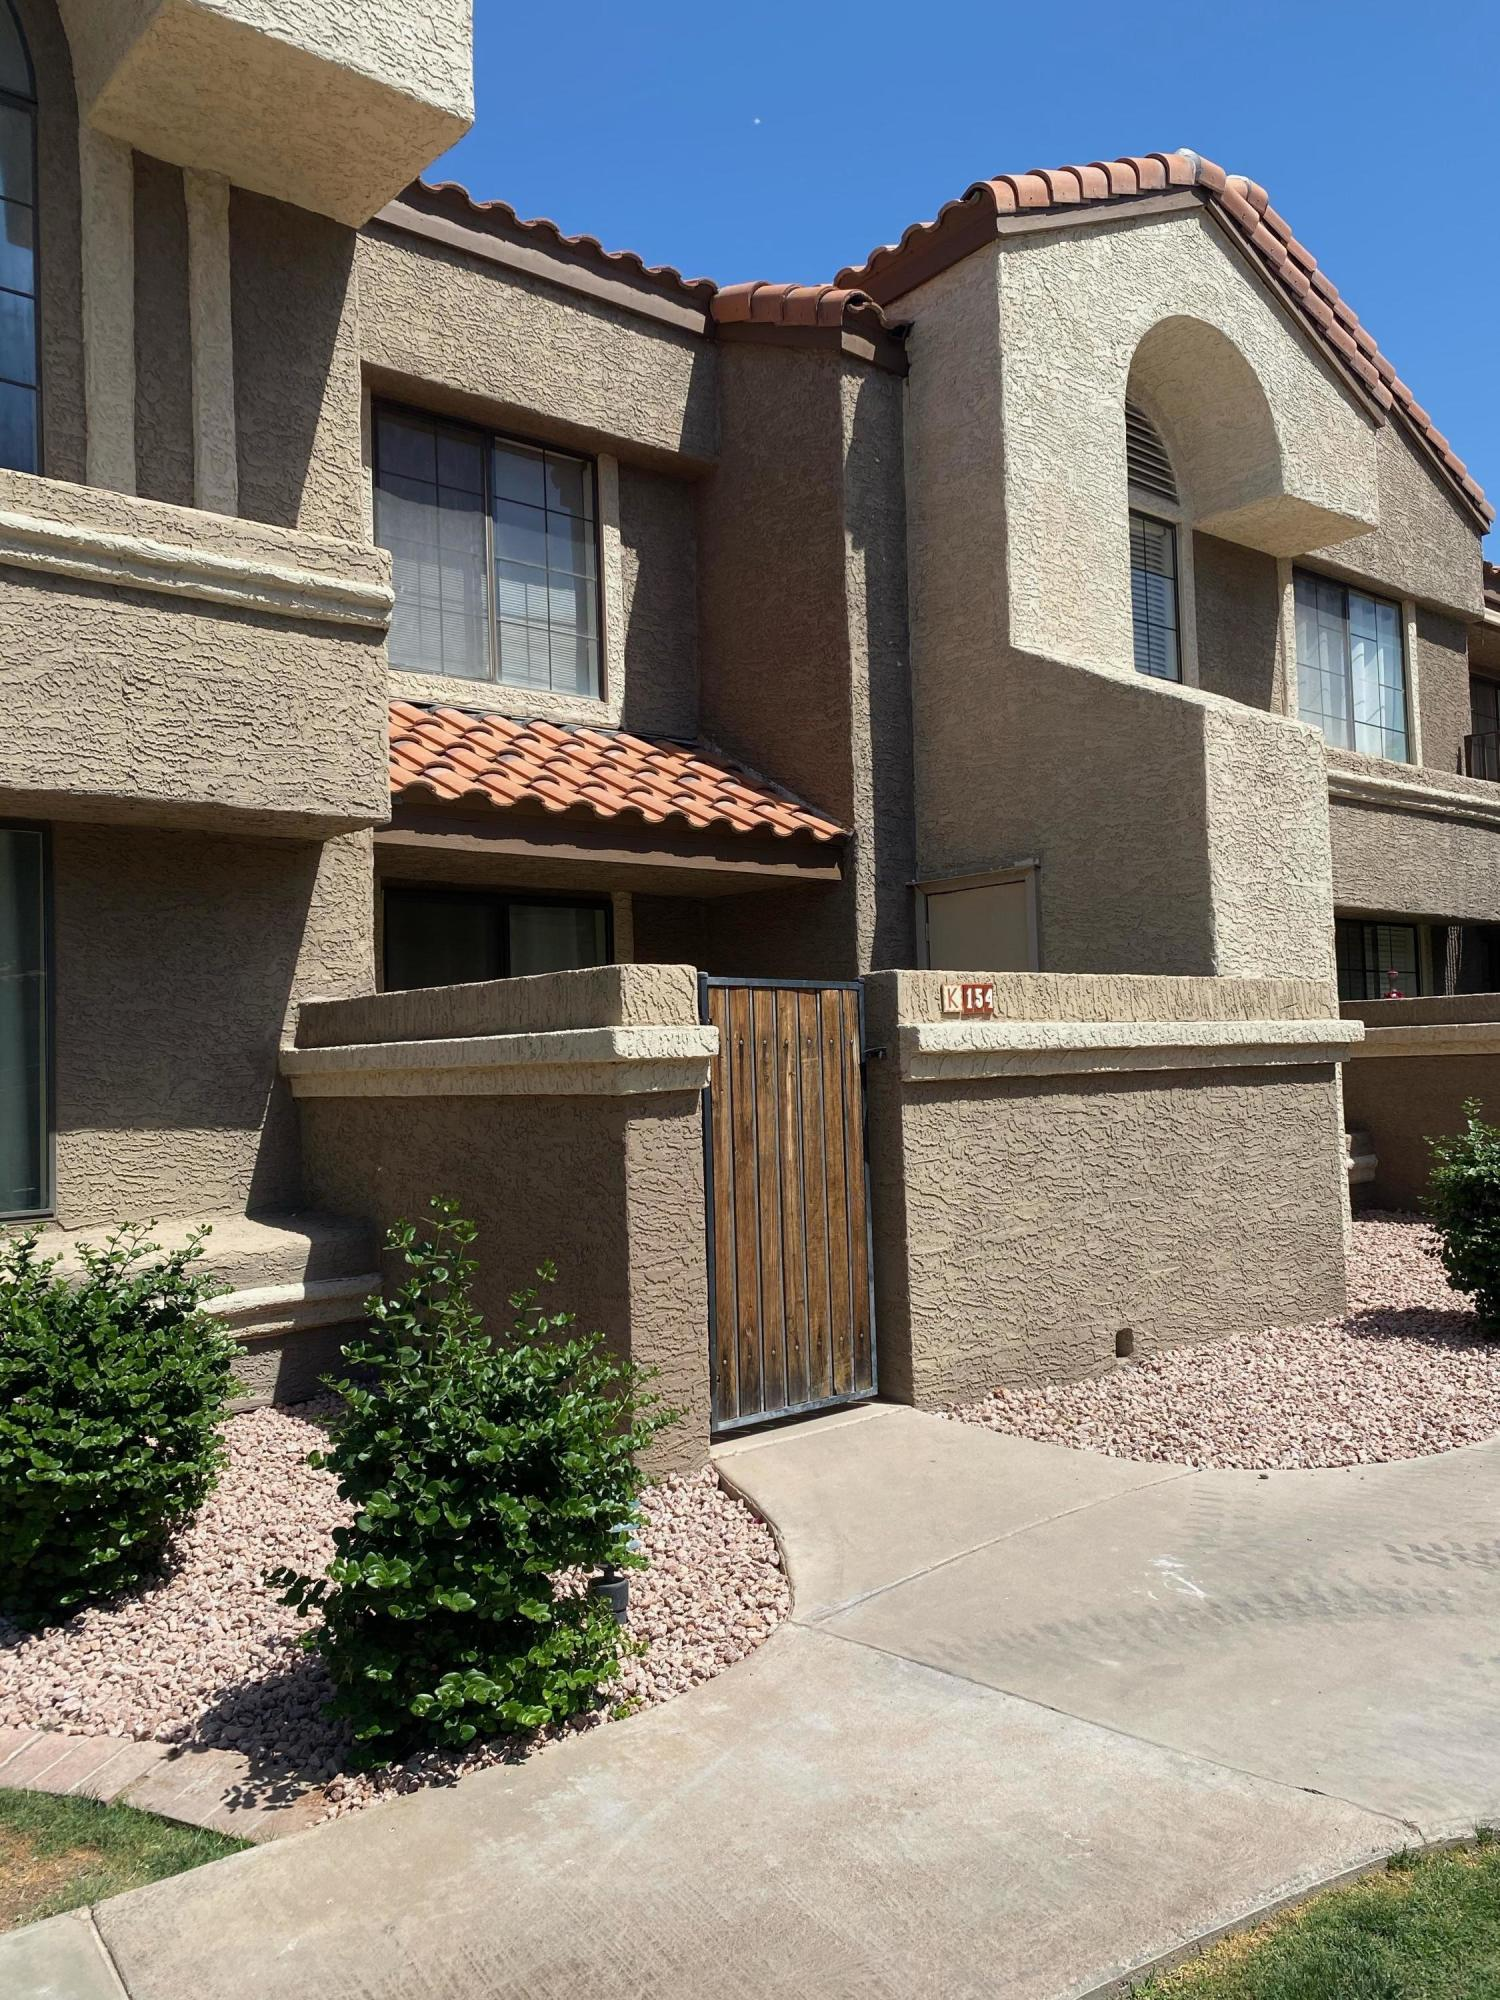 Don't miss this fantastic 2B/2B condo near ASU! This first floor unit has beautiful tile floors and plenty of natural light to highlight the open living and dining room floor plan. The spacious primary bedroom features an ensuite bathroom with dual vanities and a large closet. This would make a great primary residence or amazing rental opportunity.